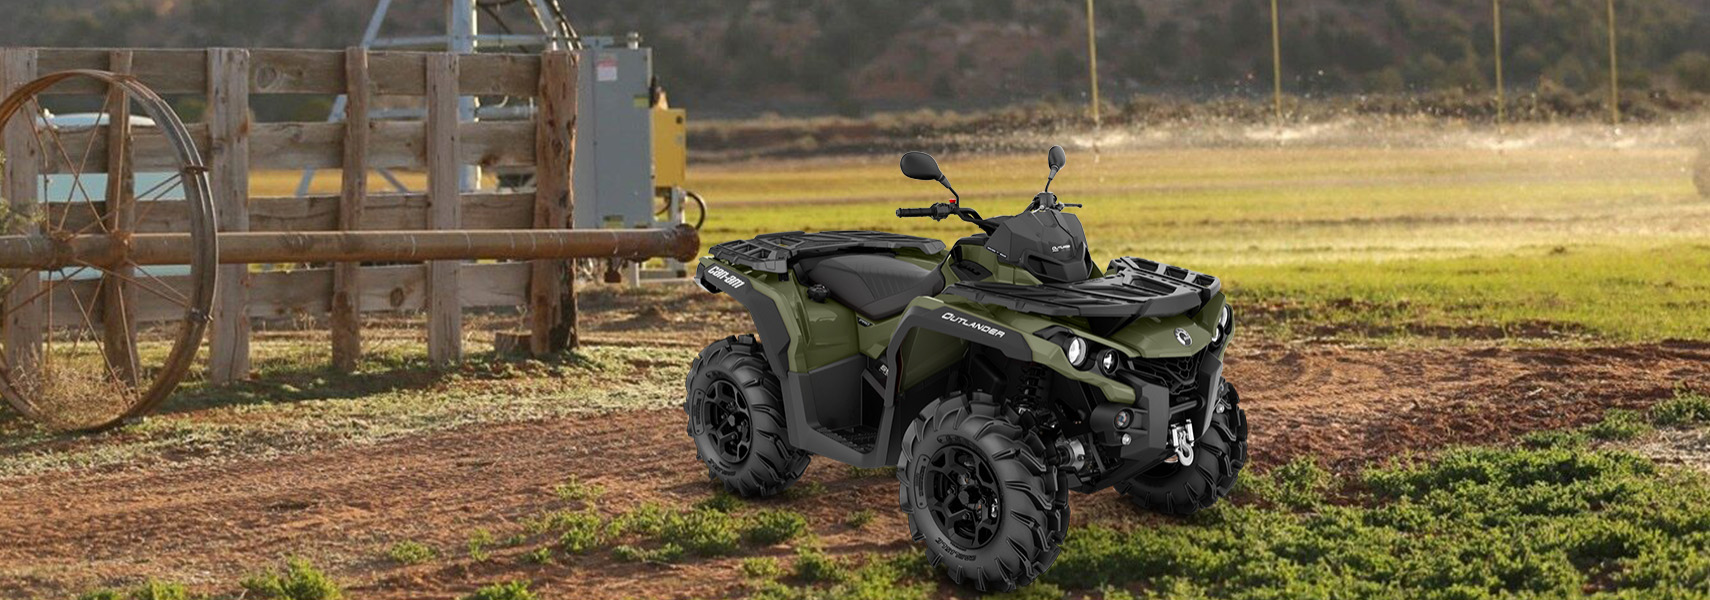 Can-Am ATV - 2020 OUTLANDER PRO+ 570 T